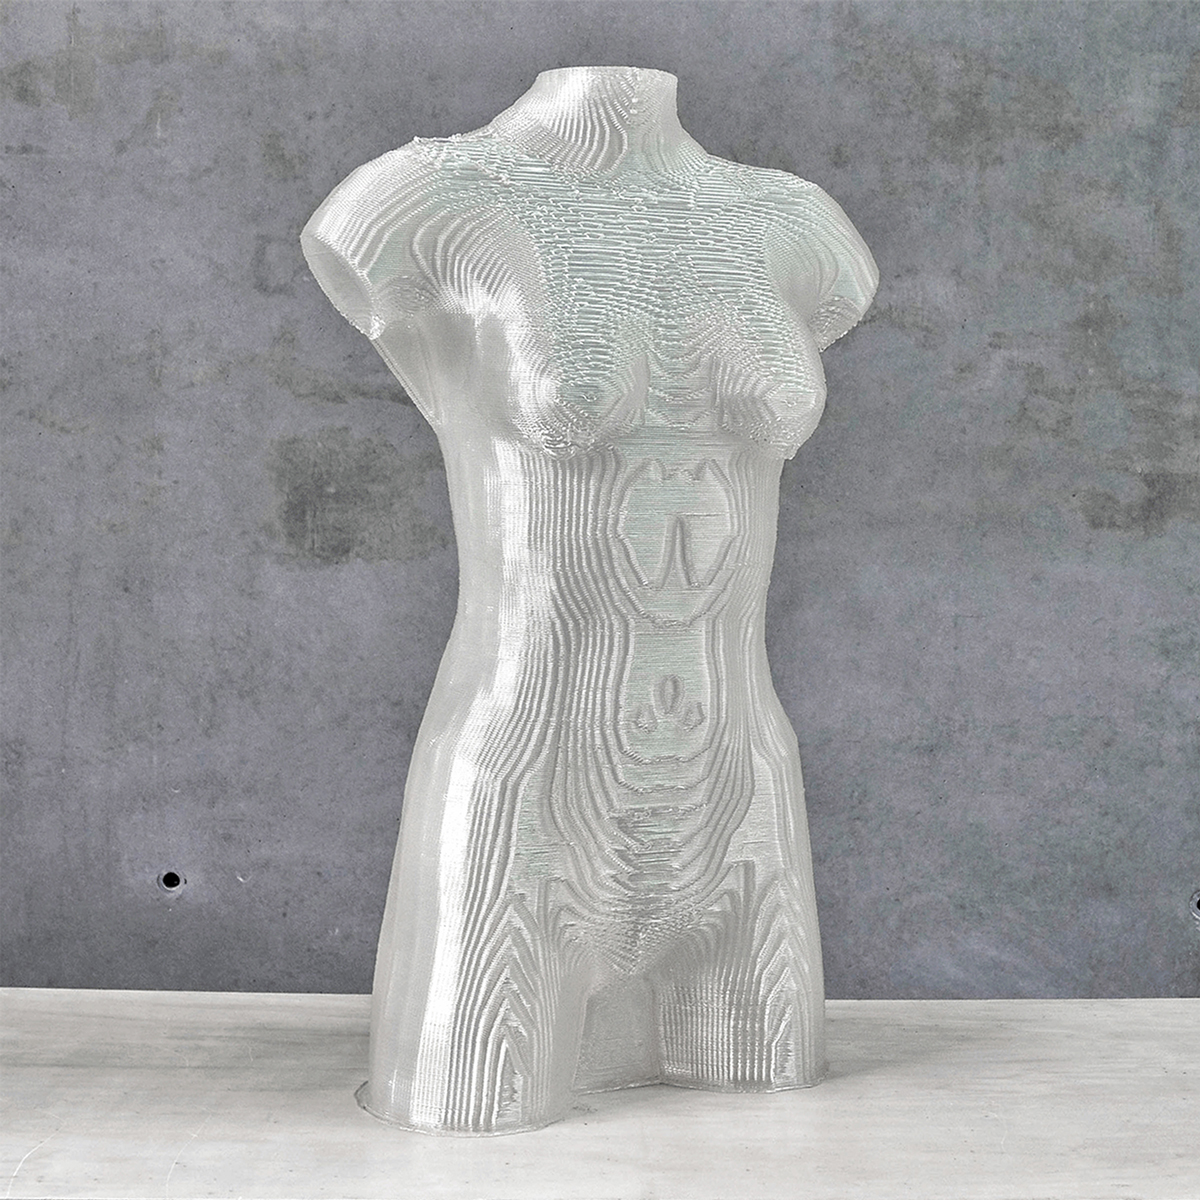 3D printed Mannequin